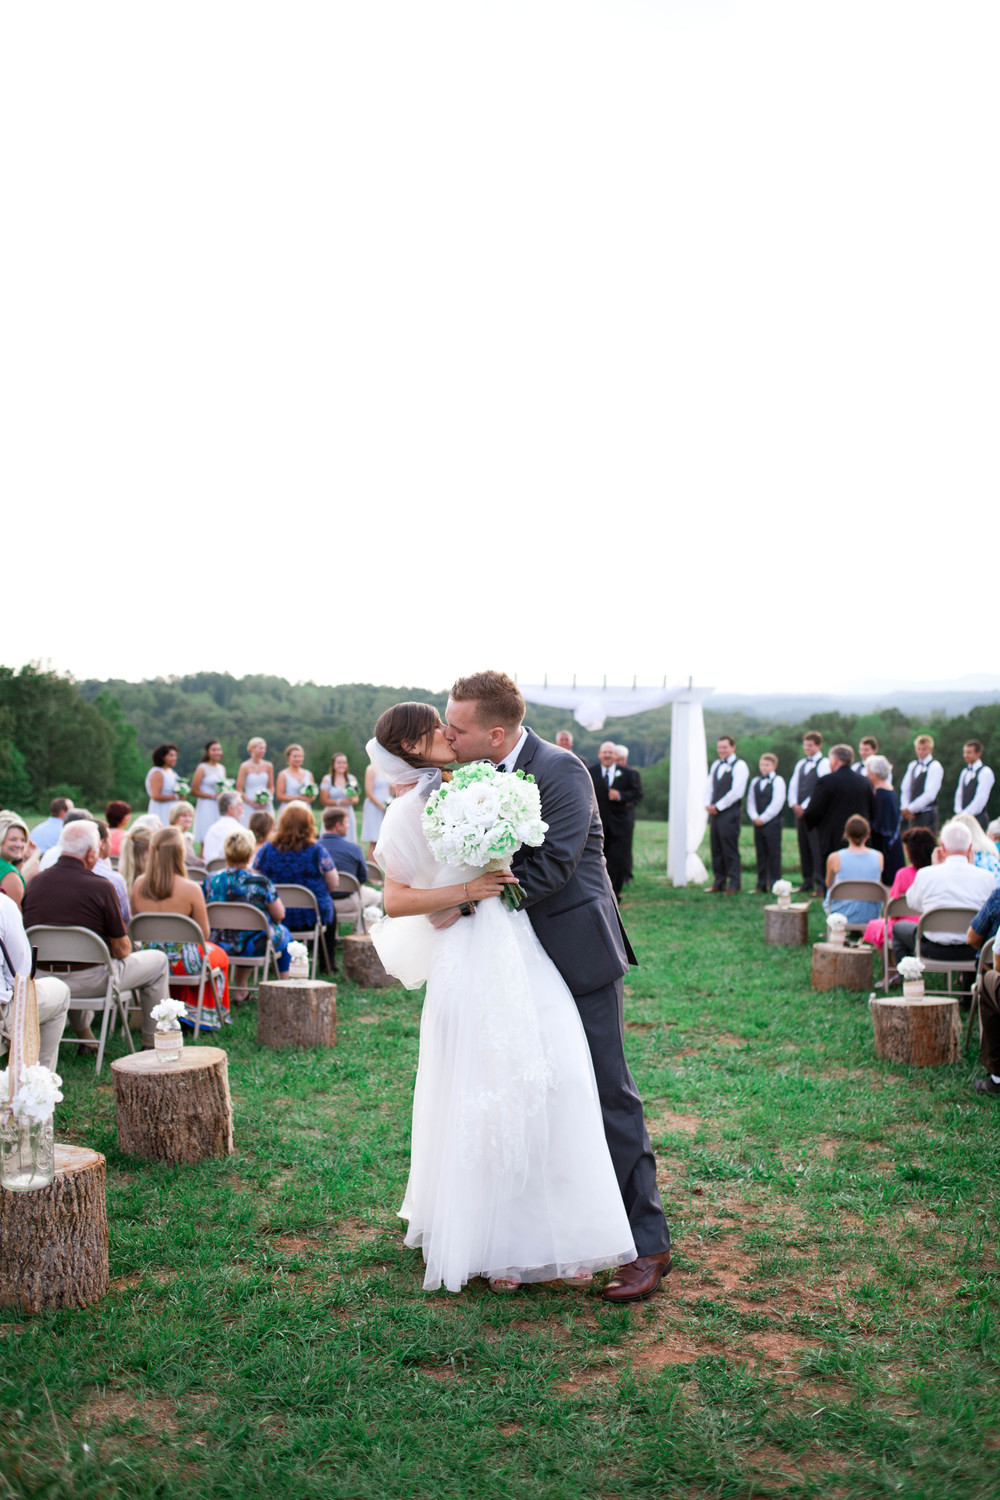 first kiss, lindsey plantation, sc wedding photographer, unplugged ceremony, poured out photography, rustic, lace, barn, field,